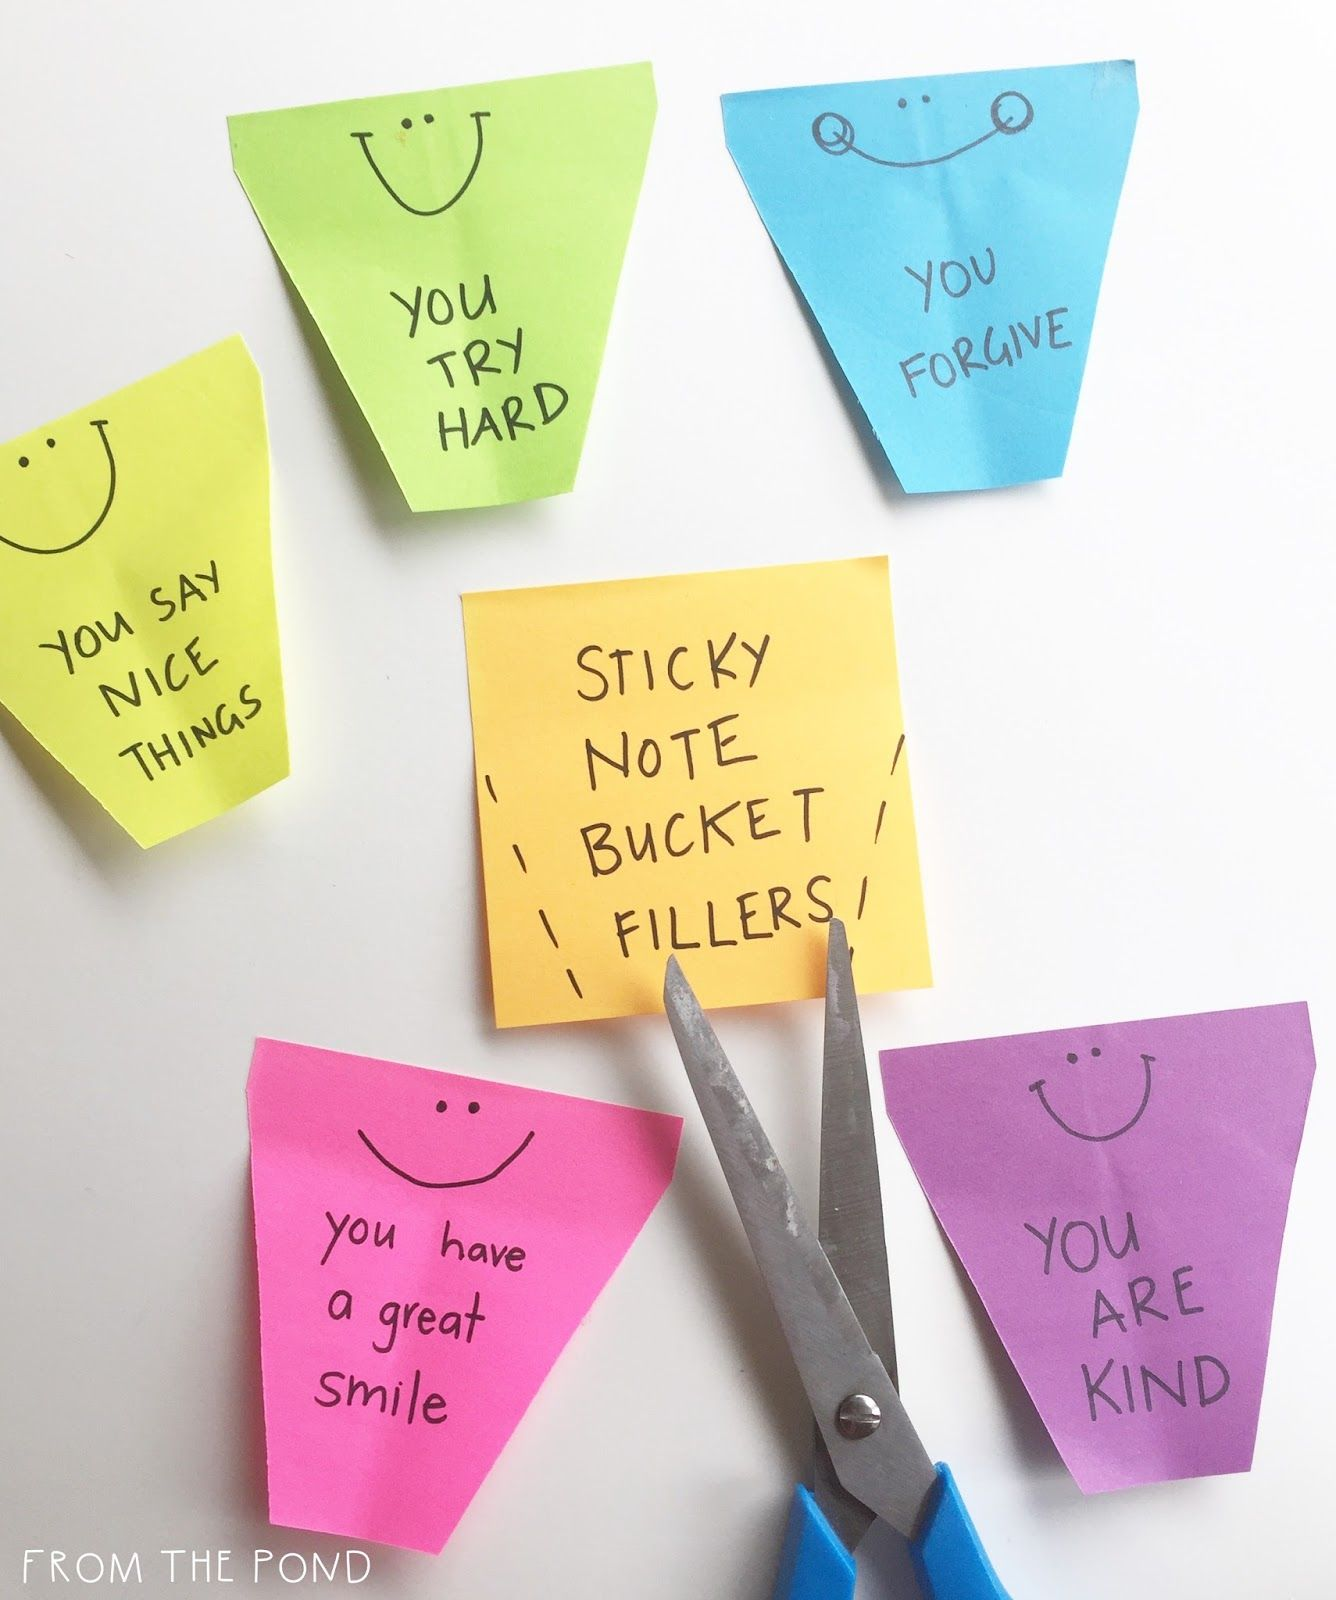 Use Sticky Notes To Create Bucket Filling Statements